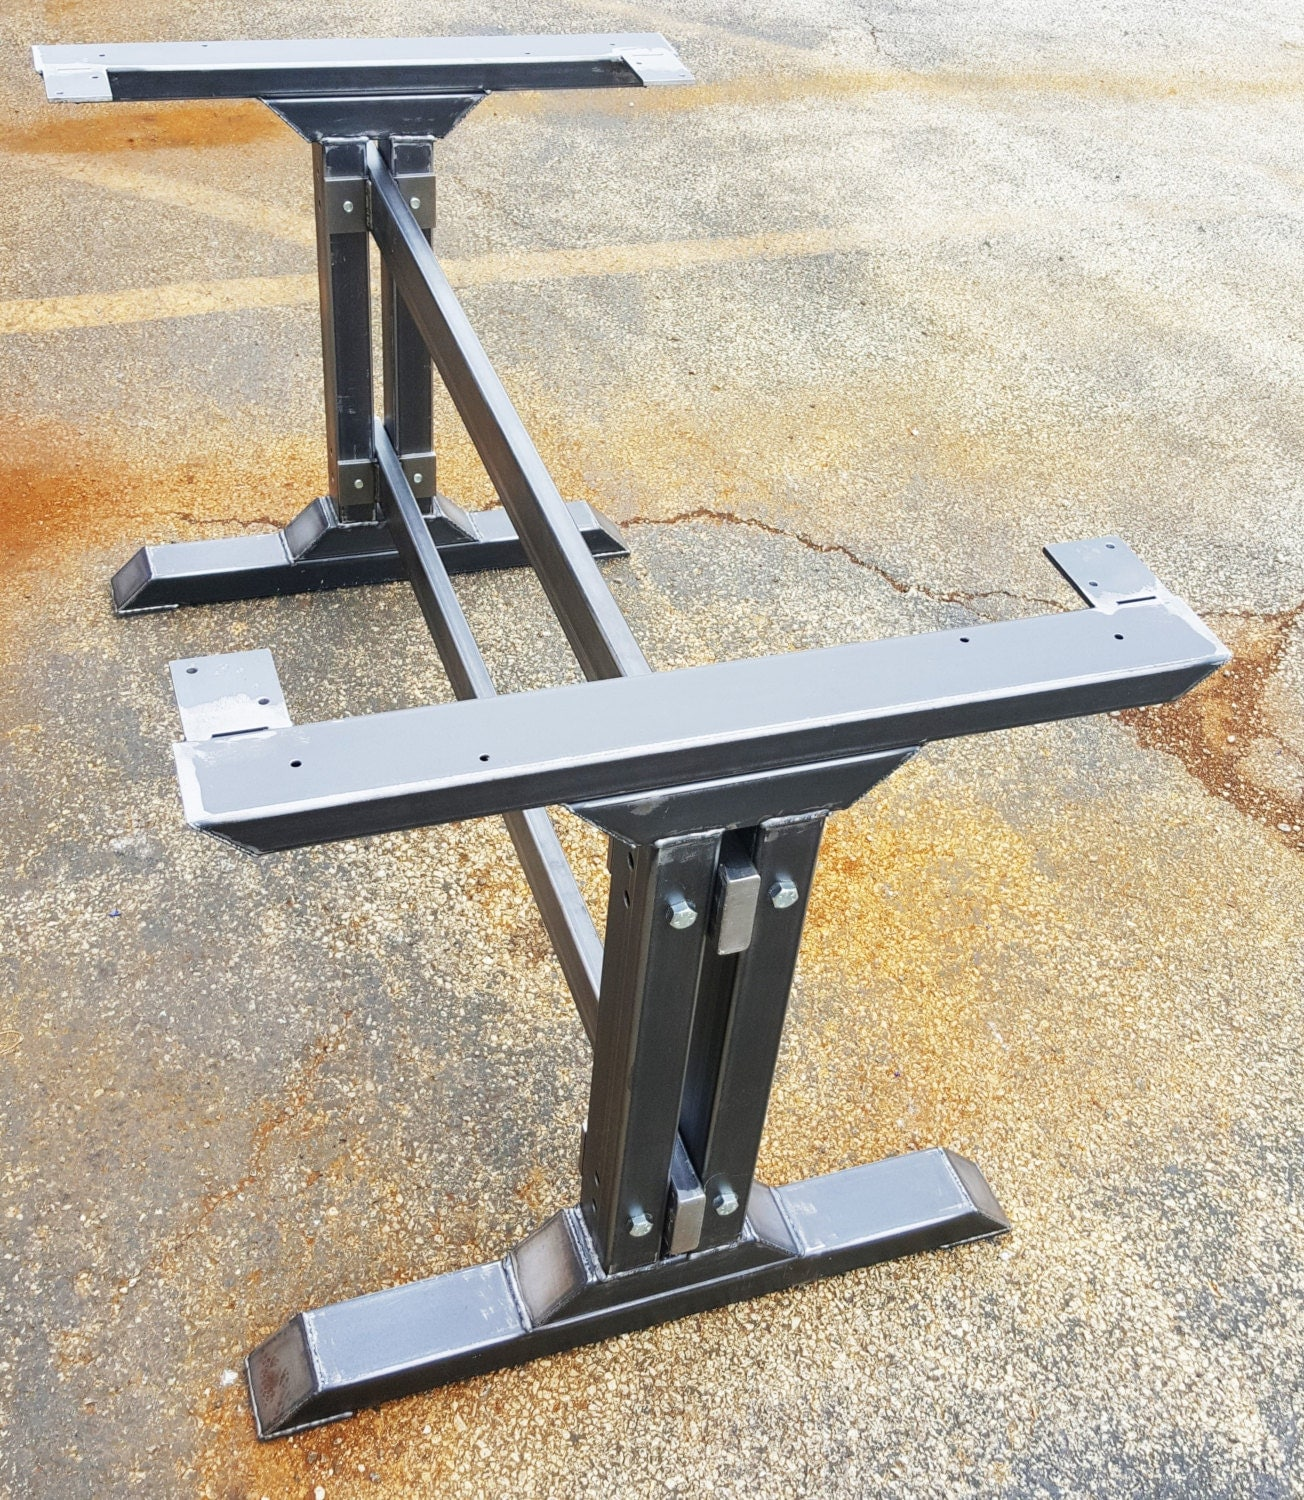 Stylish dining table legs model 010 industrial kitchen - Kitchen table bases ...